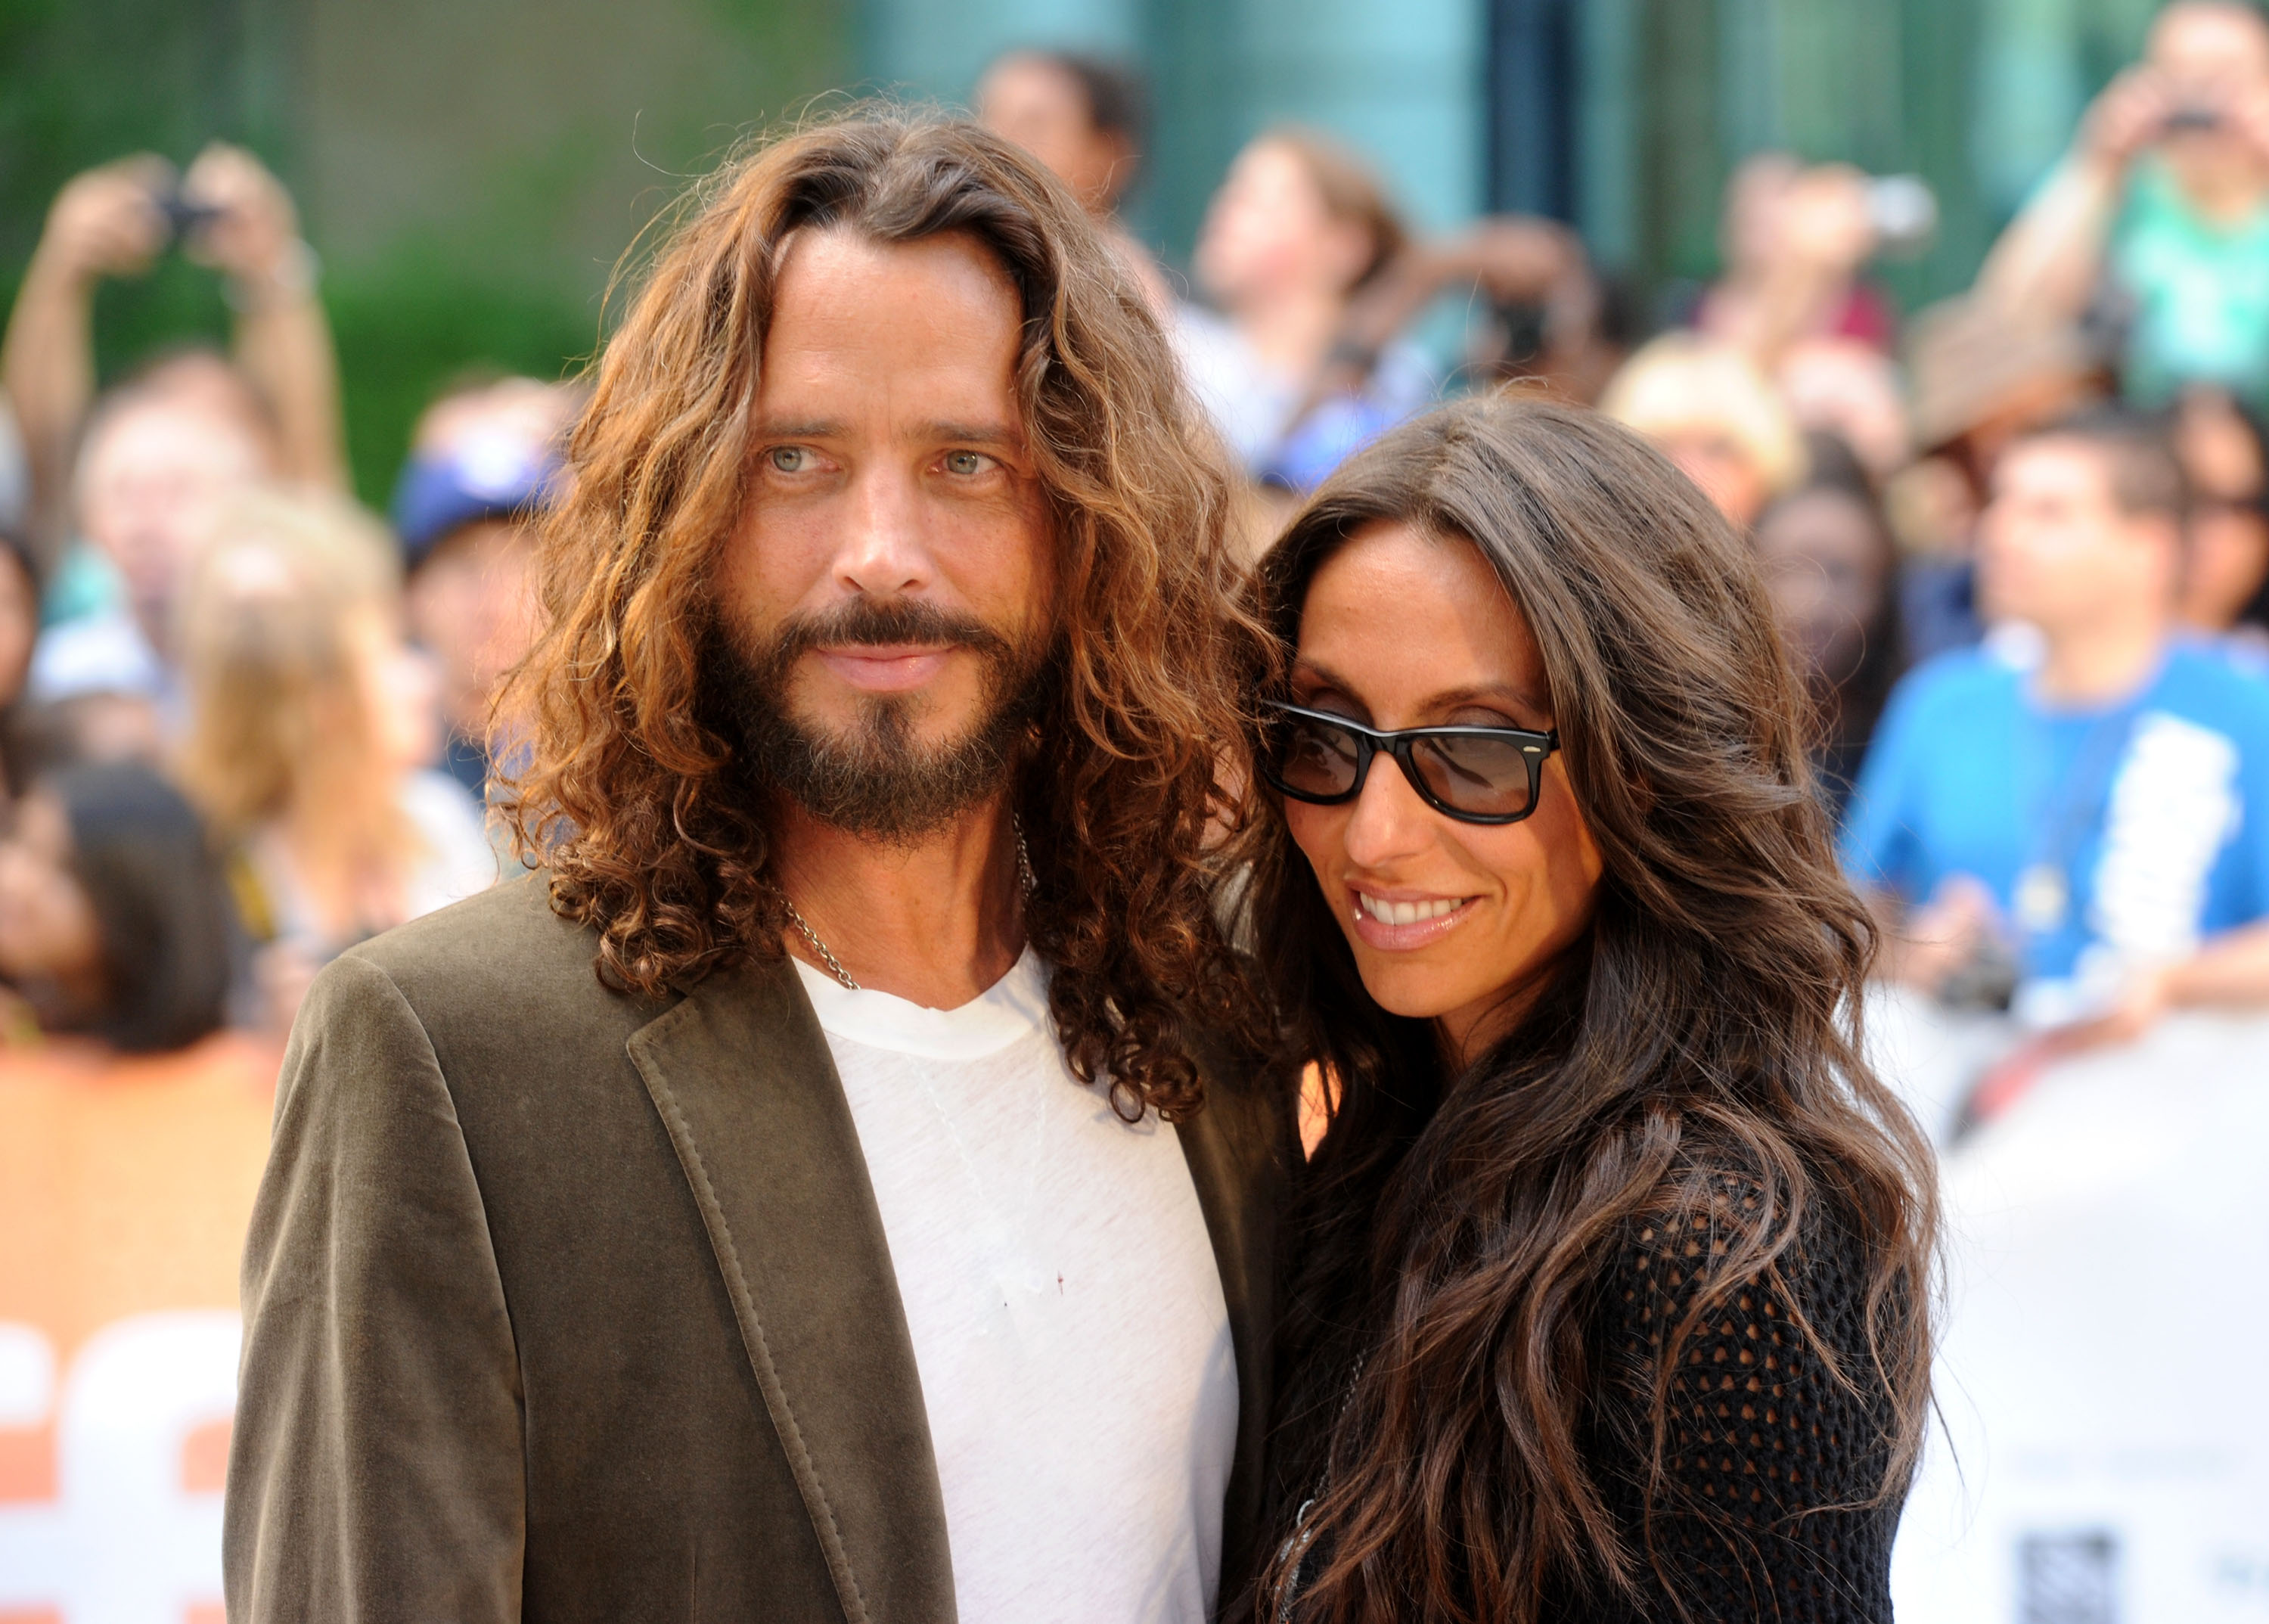 Chris Cornell's widow says she's 'heartbroken' following toxicology report showing prescription drugs in his system